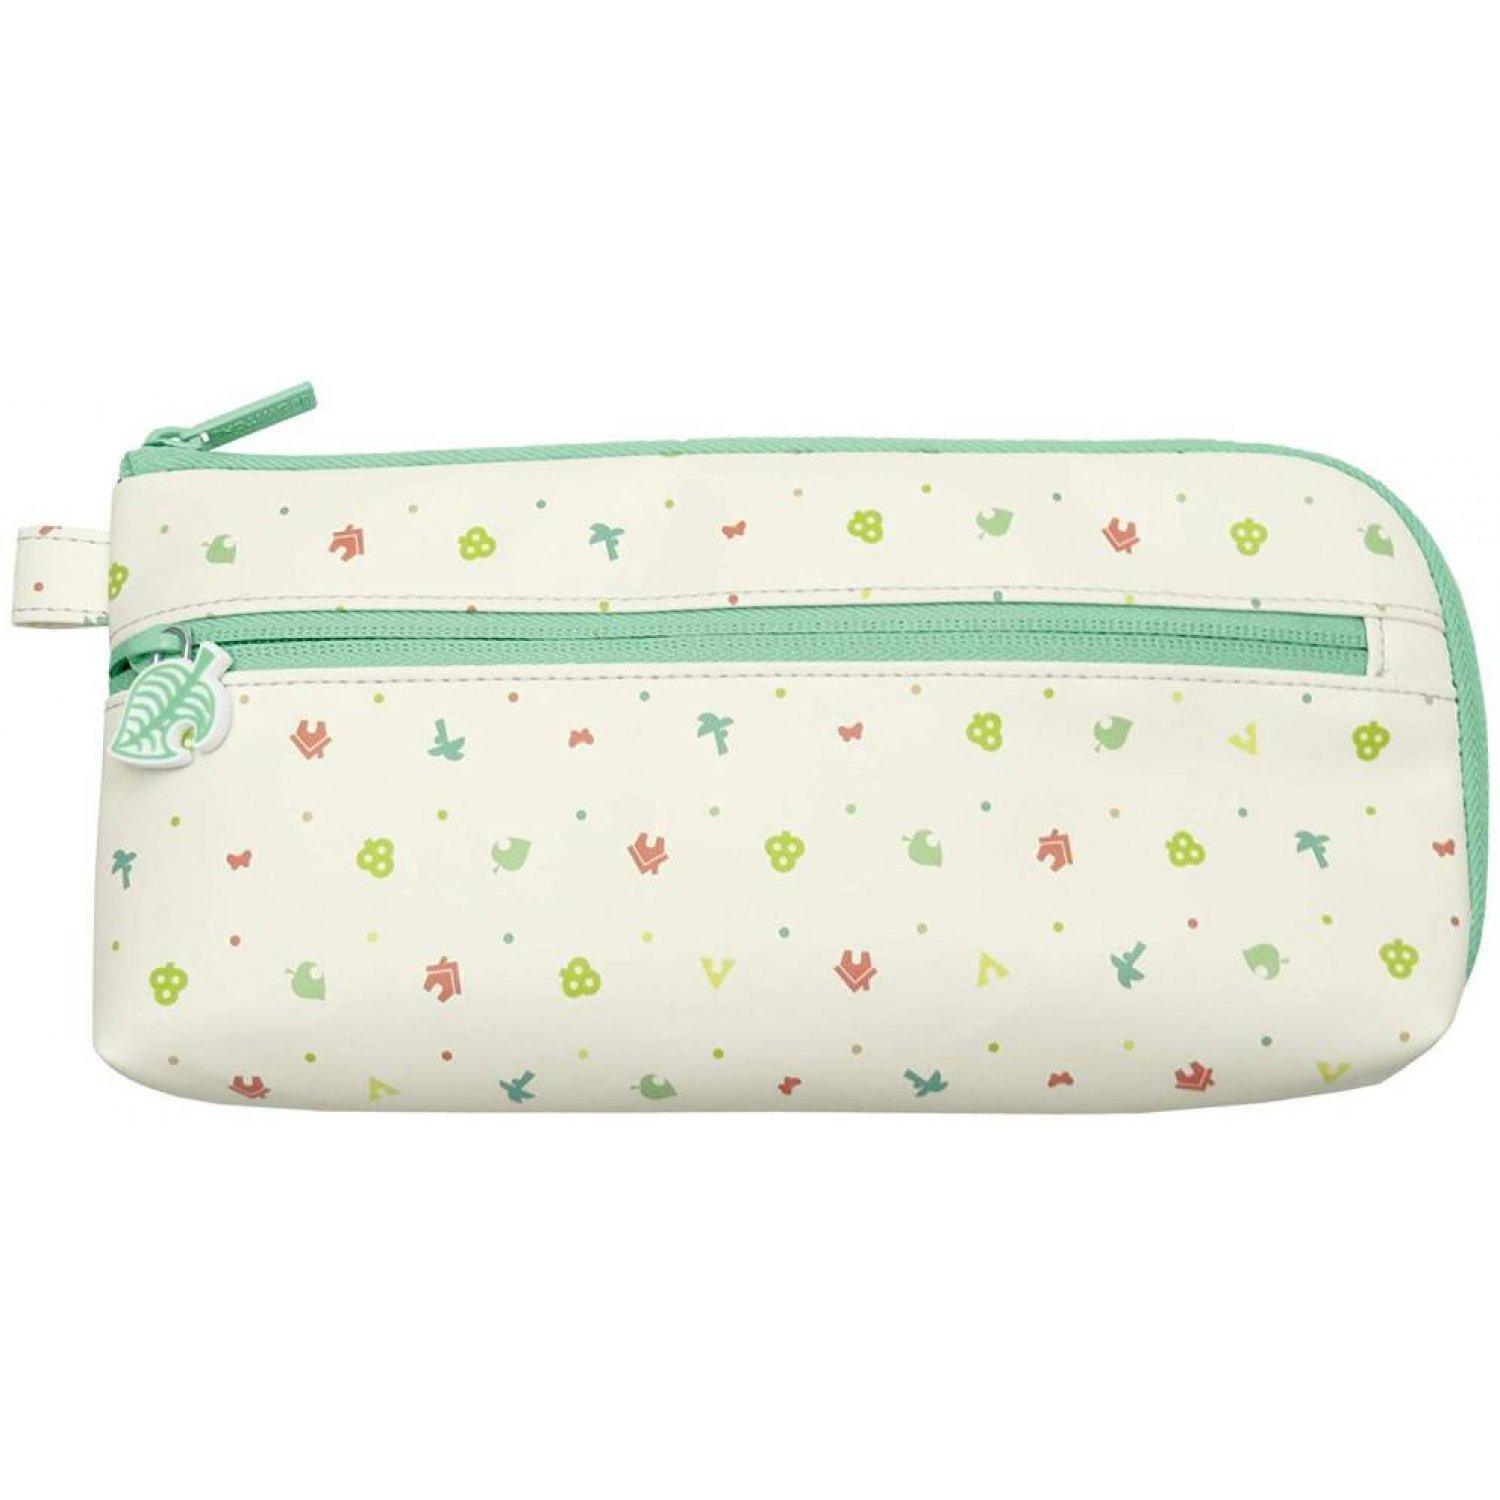 Animal Crossing Hand Bag Pouch For Nintendo Switch Switch Lite